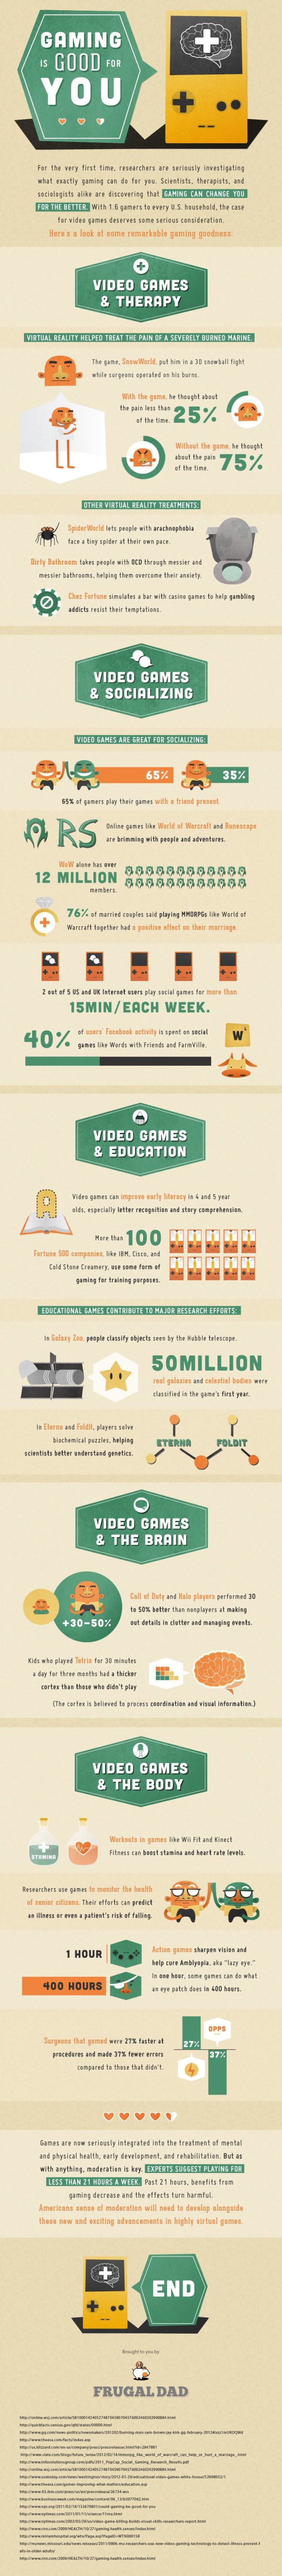 Why Gaming is Good for You- an infographic from Frugal Dad